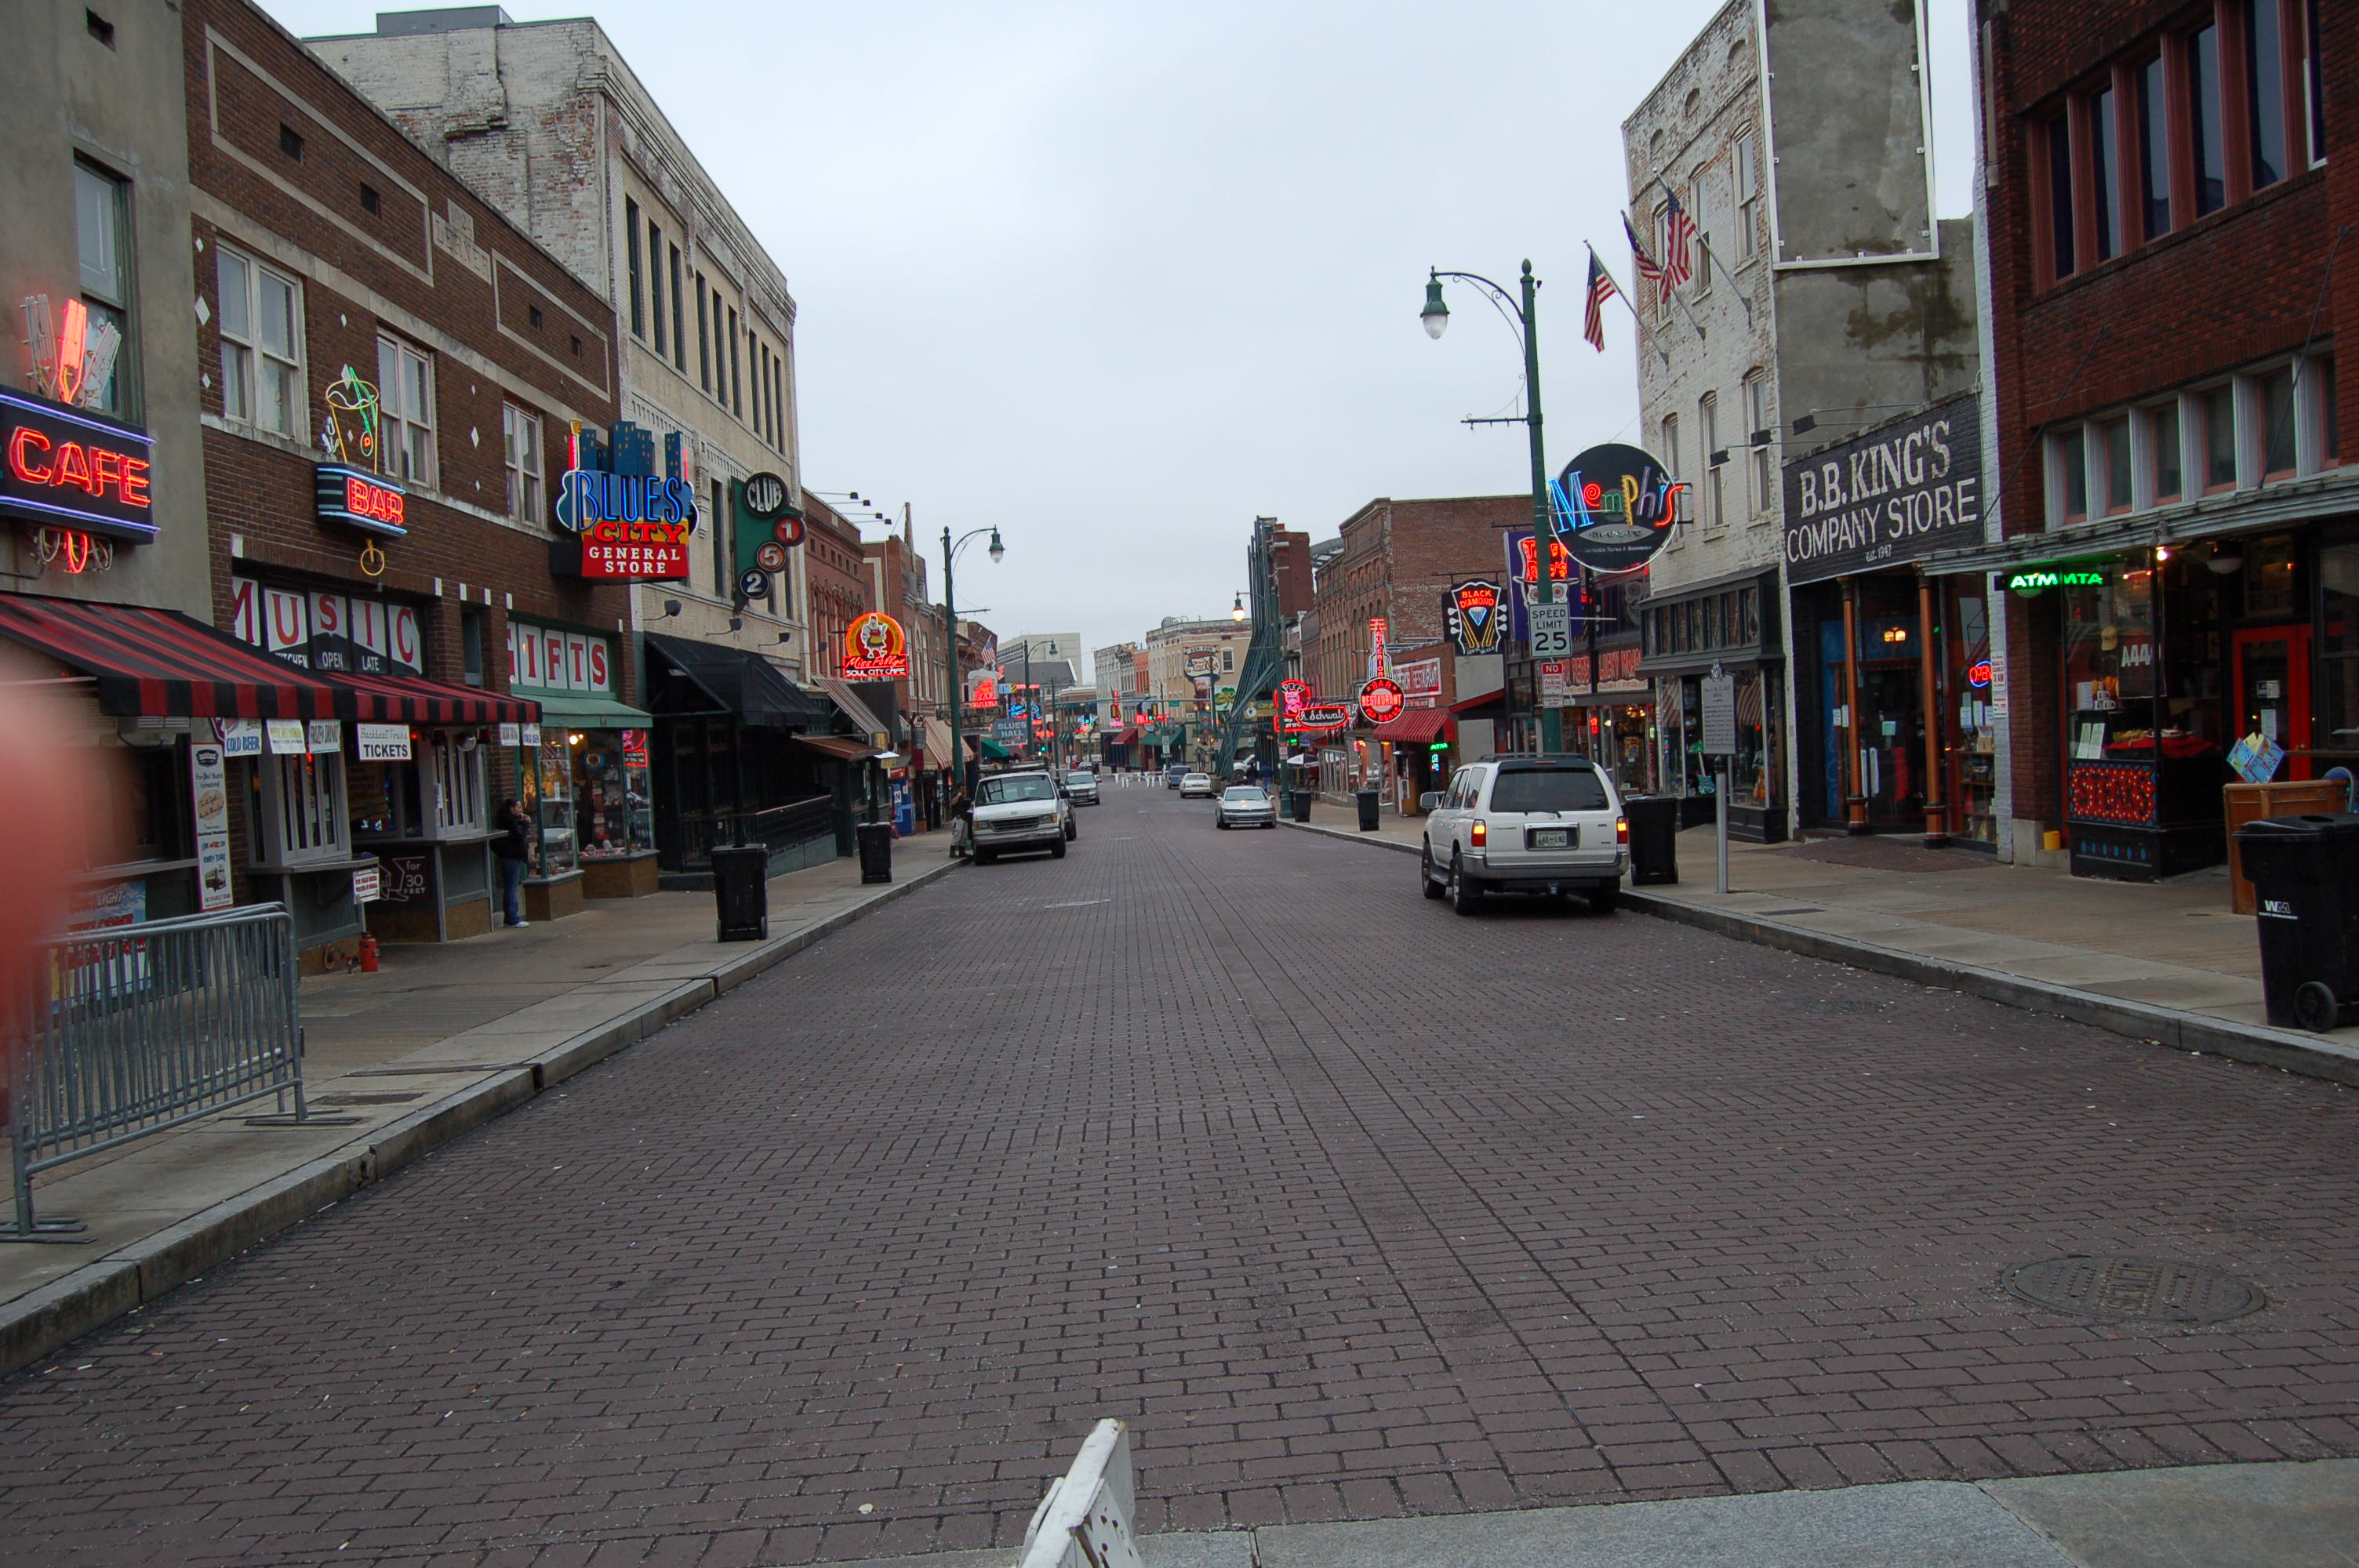 Beale St. overview